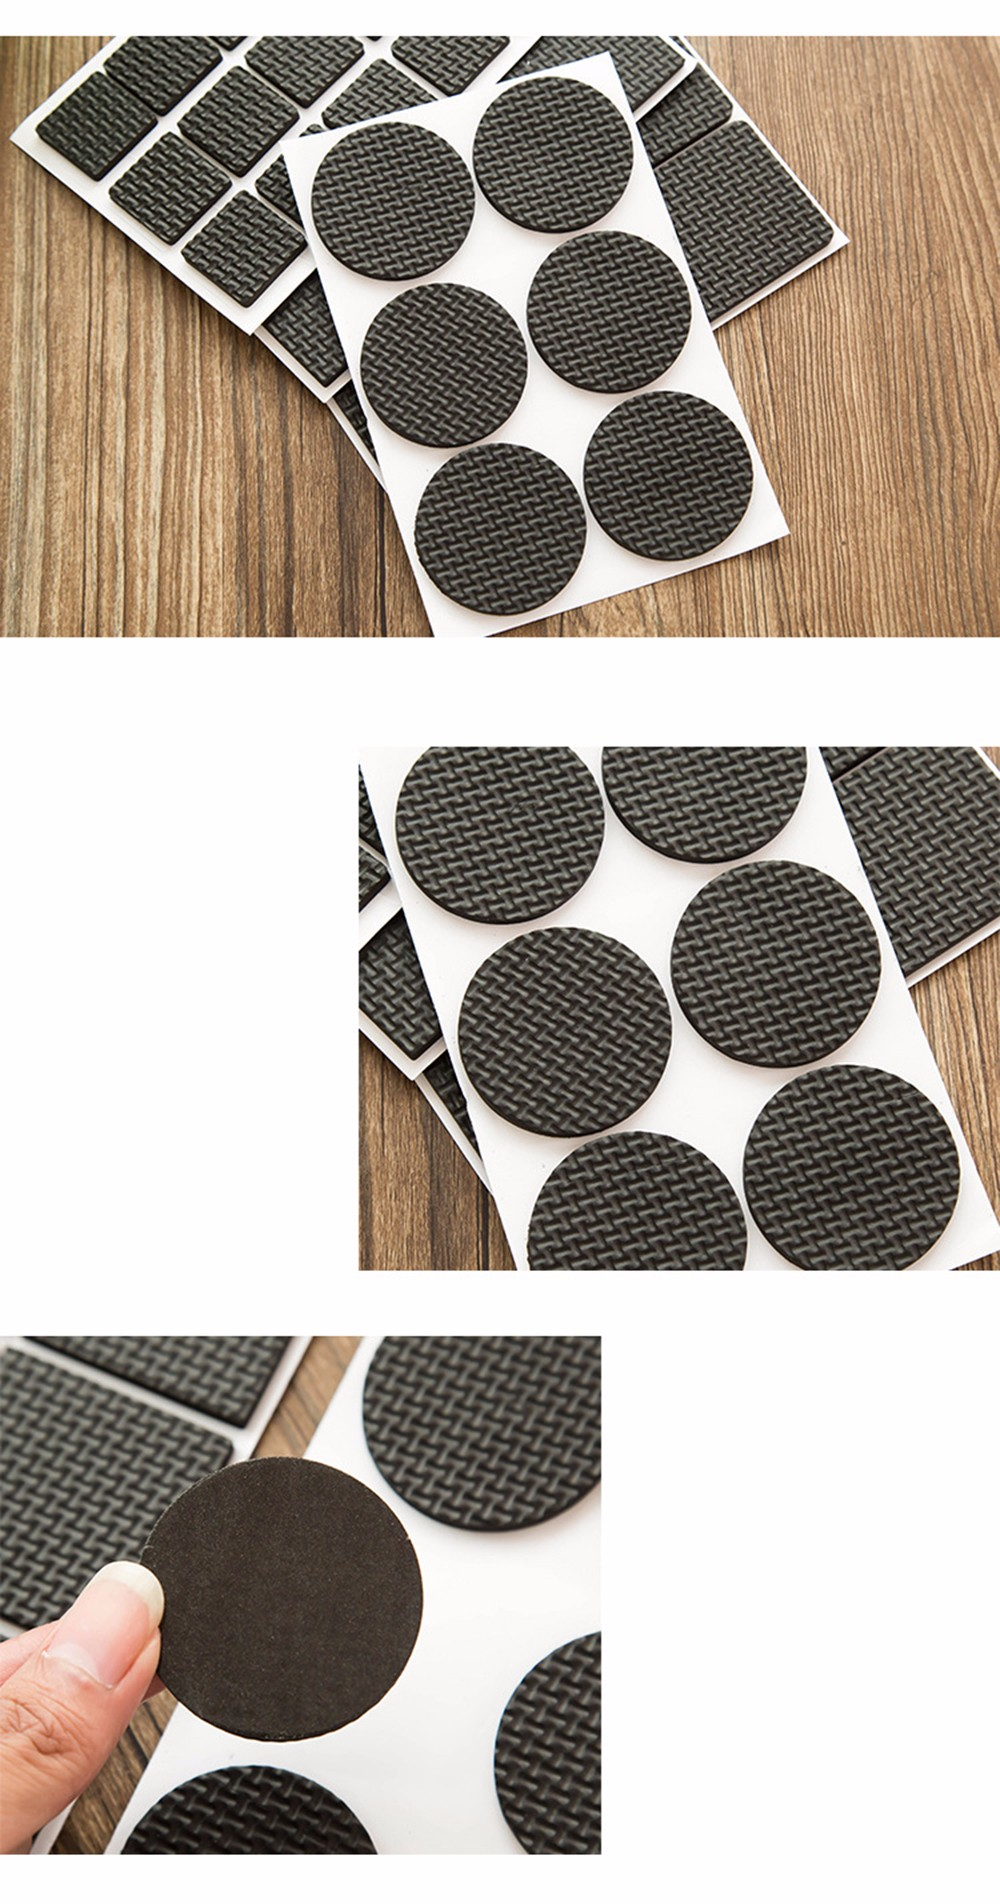 Self-Adhesive-Furniture-Chair-And-Table-Leg-Pads-Soft-Thickened-Multifunctional-Anti-Slip-Pads-Floors-Scratch-Resistant-Mats-HG0272 (25)